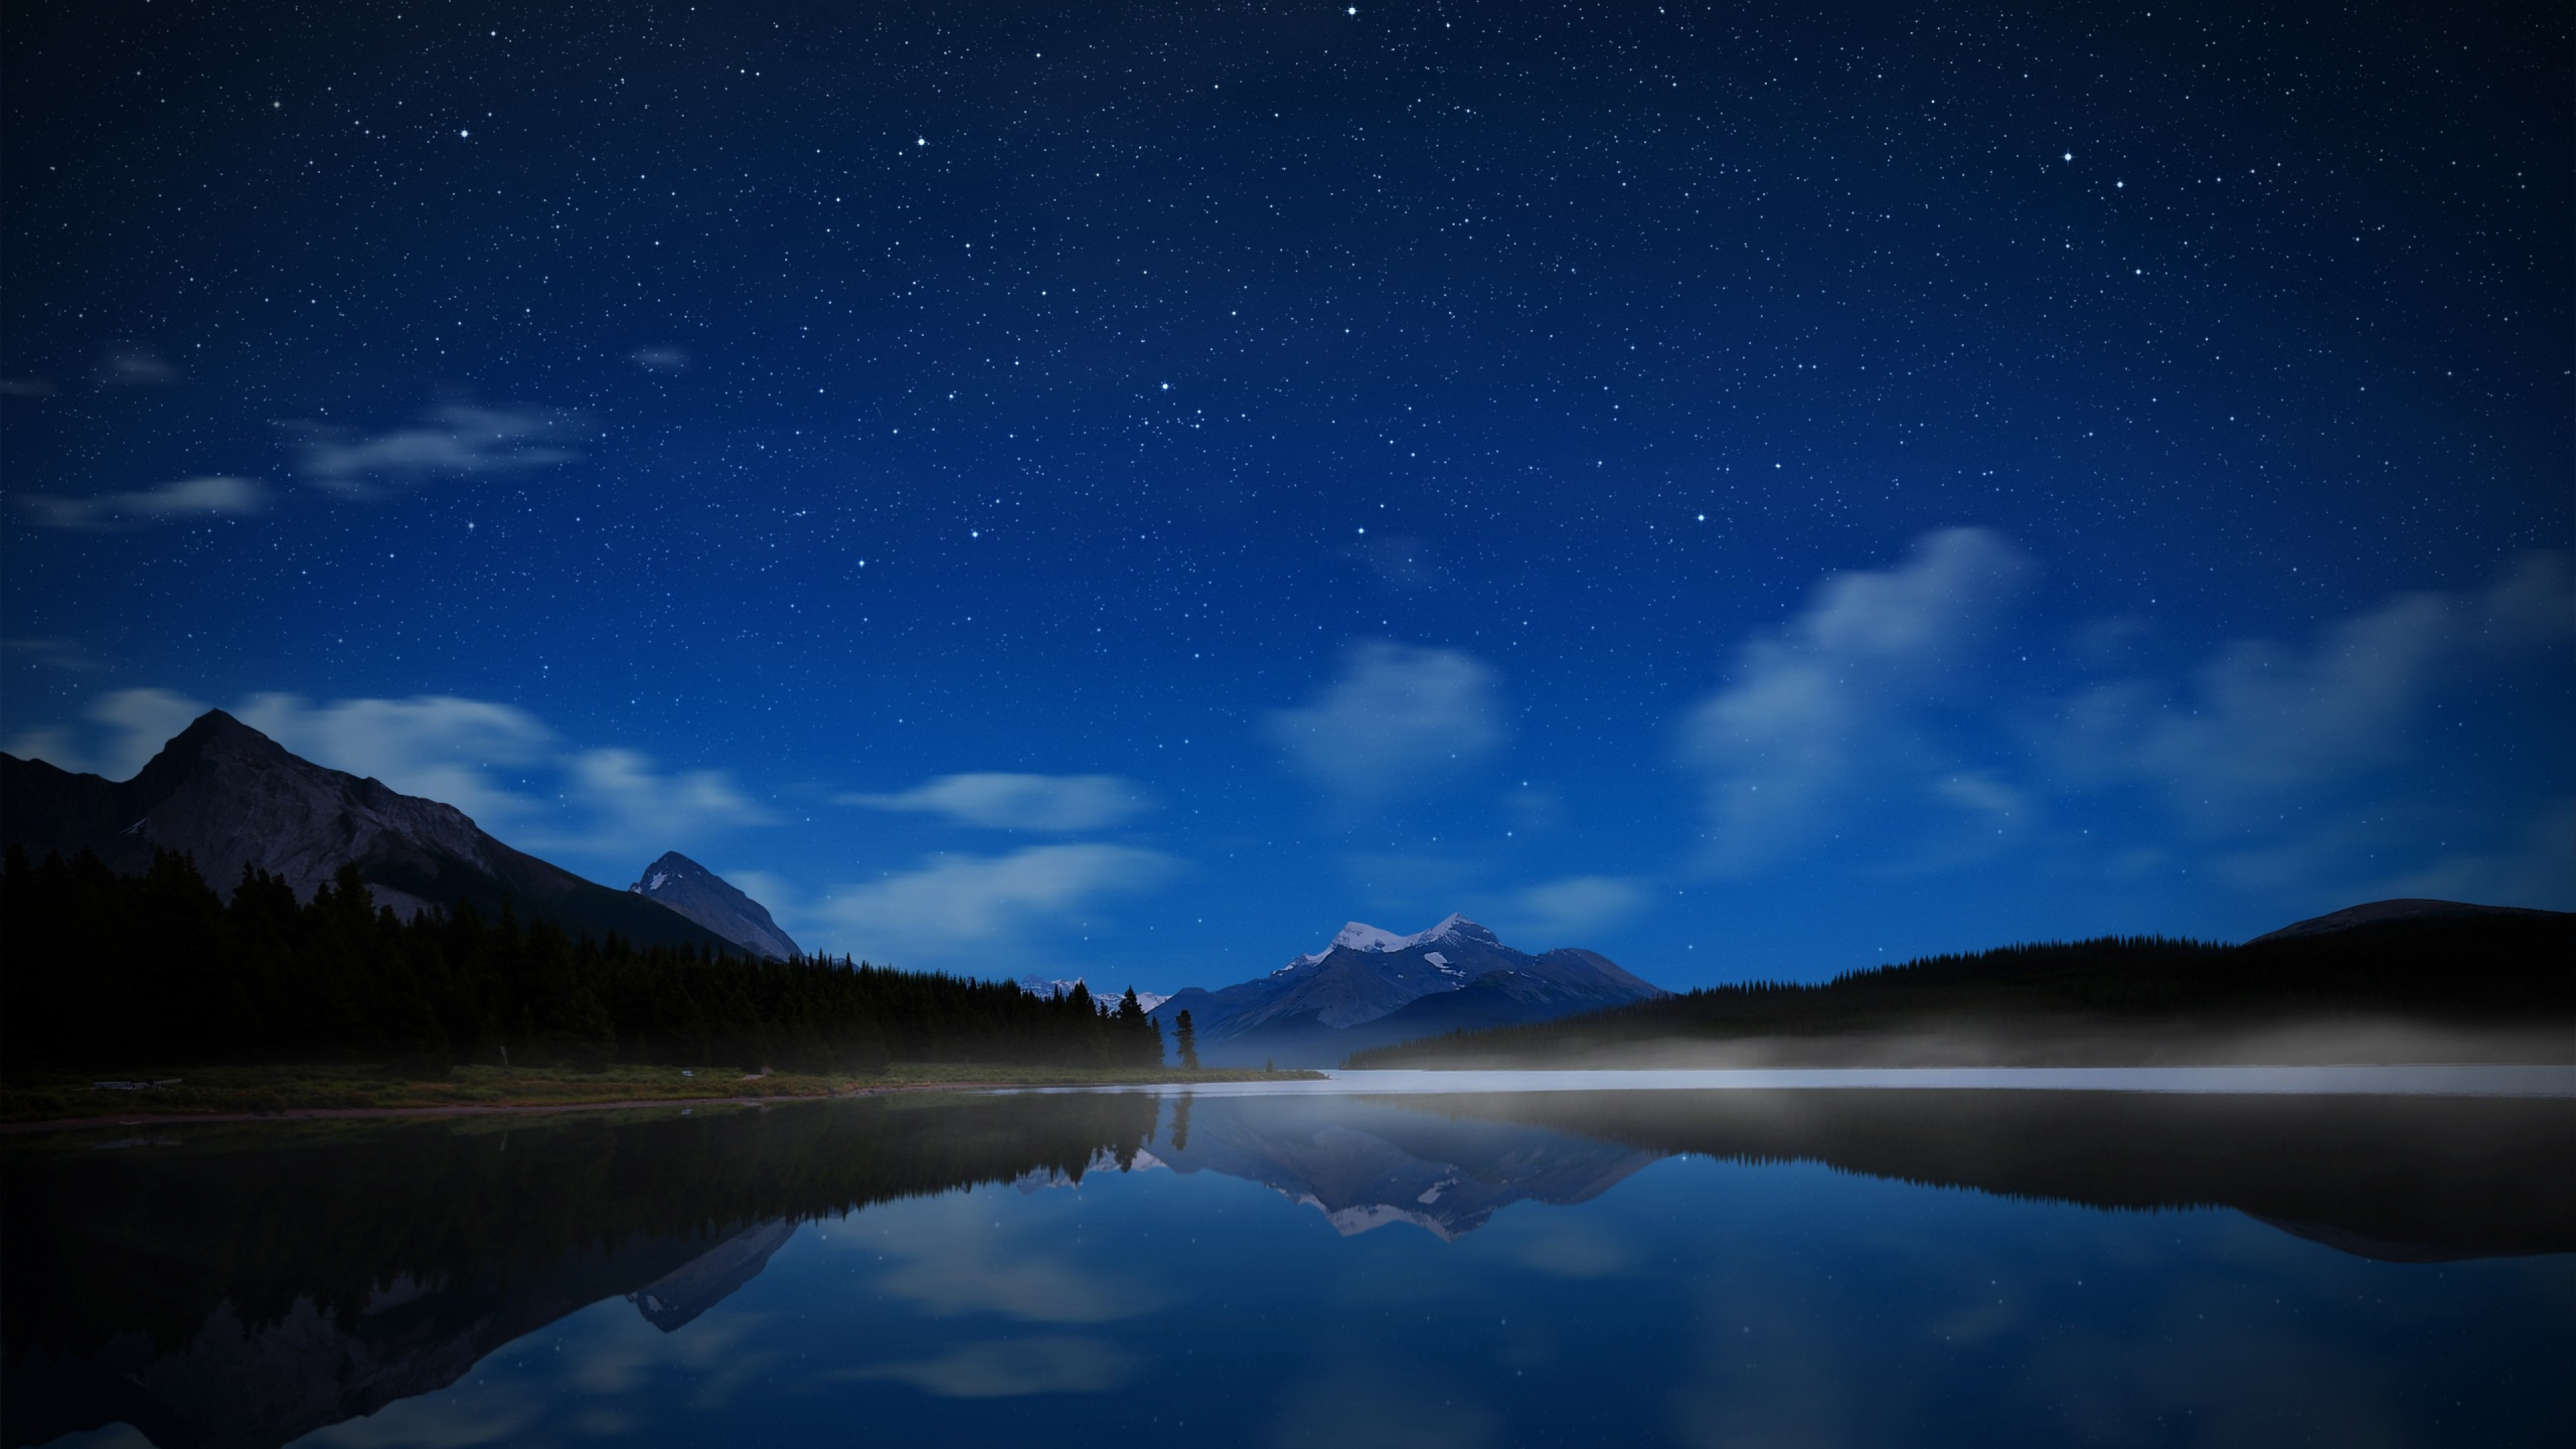 Lake Stars Water smooth surface Fog Wallpaper Background 4K Ultra 3840x2160